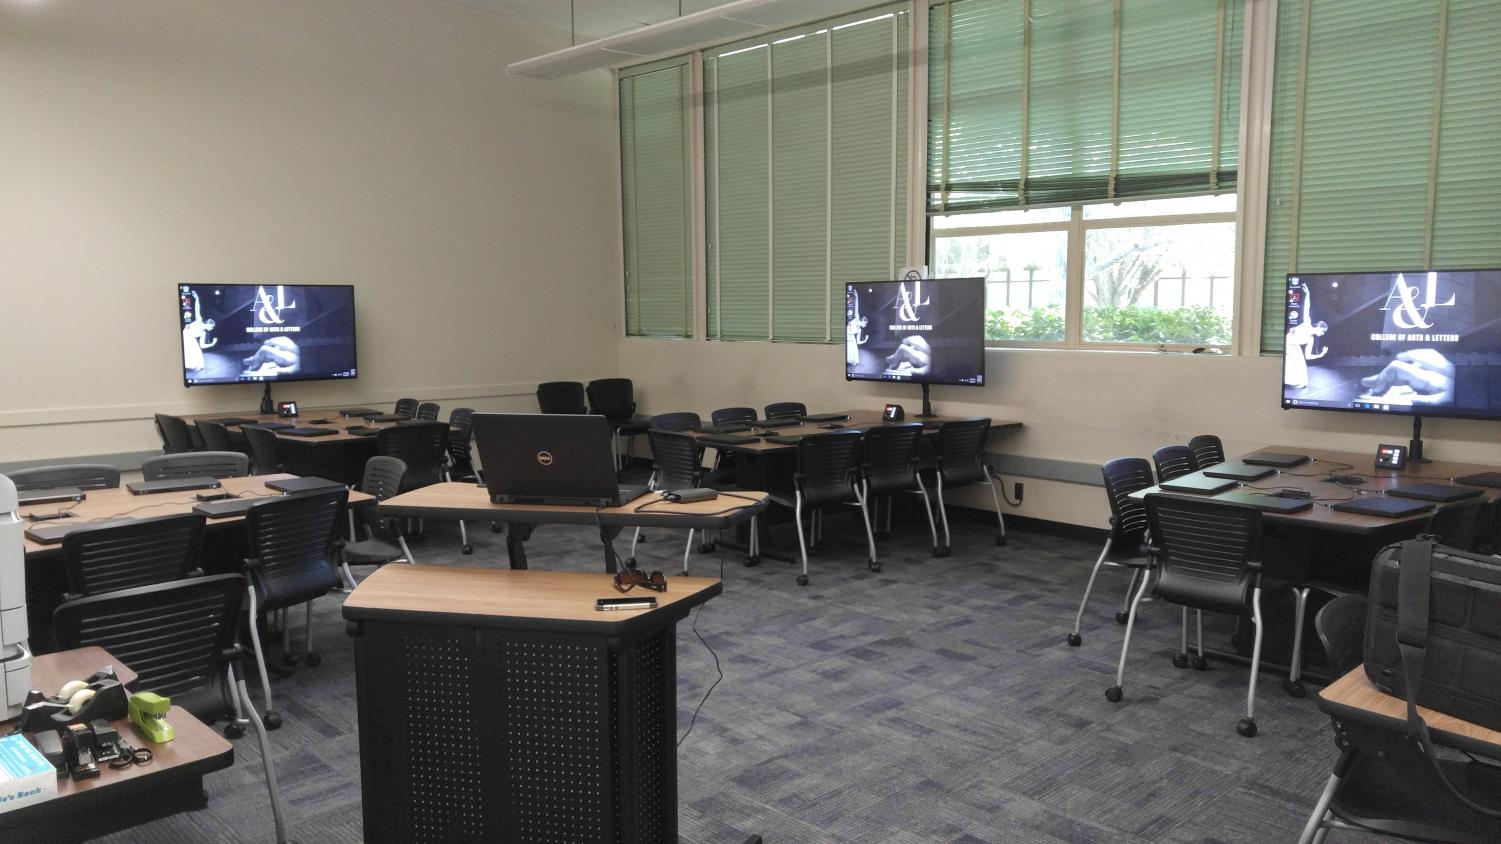 Room 131 in Calaveras Hall was remodeled over last summer and opened this semester with 36 new Dell laptops, 35 of which were stolen in Oct. 2017.